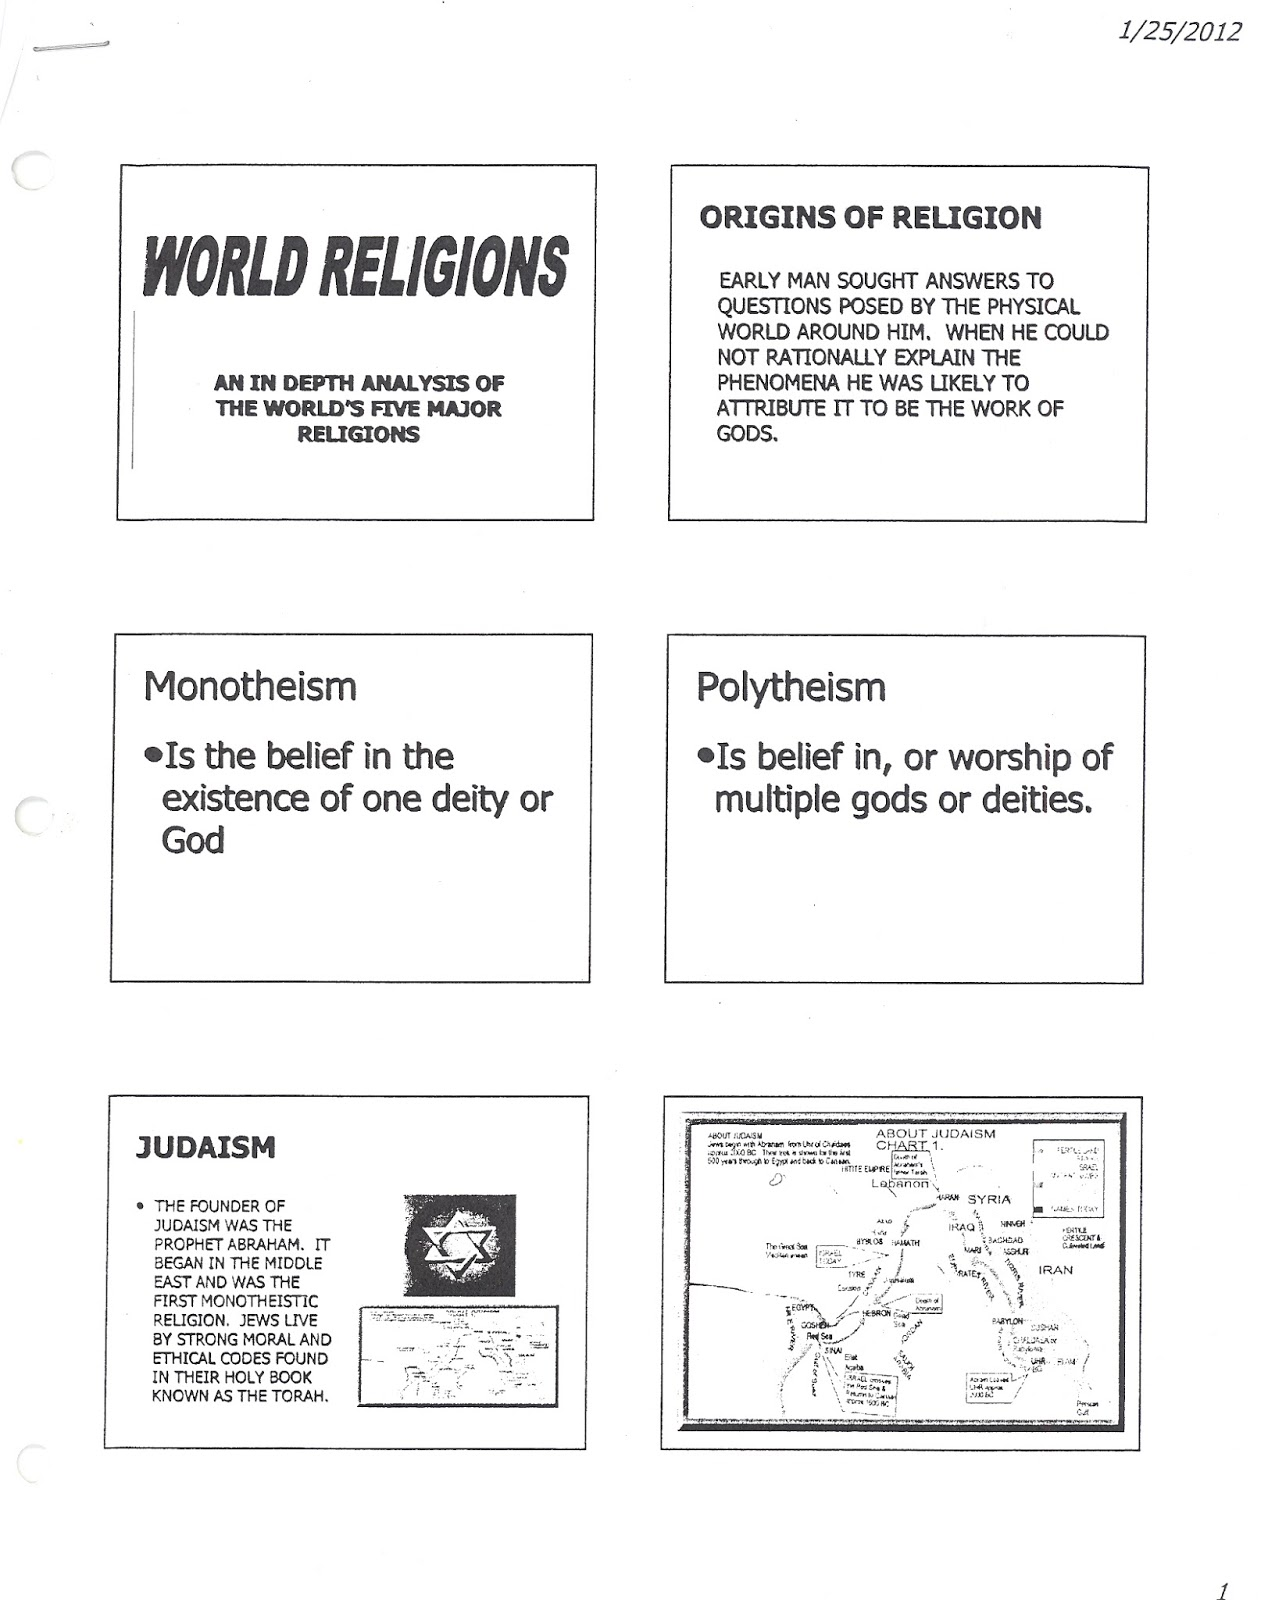 world religions 101 study guide Relg 101: introduction to world religions  a study guide will be  a central component of this course centers on appreciating the world's religions as.